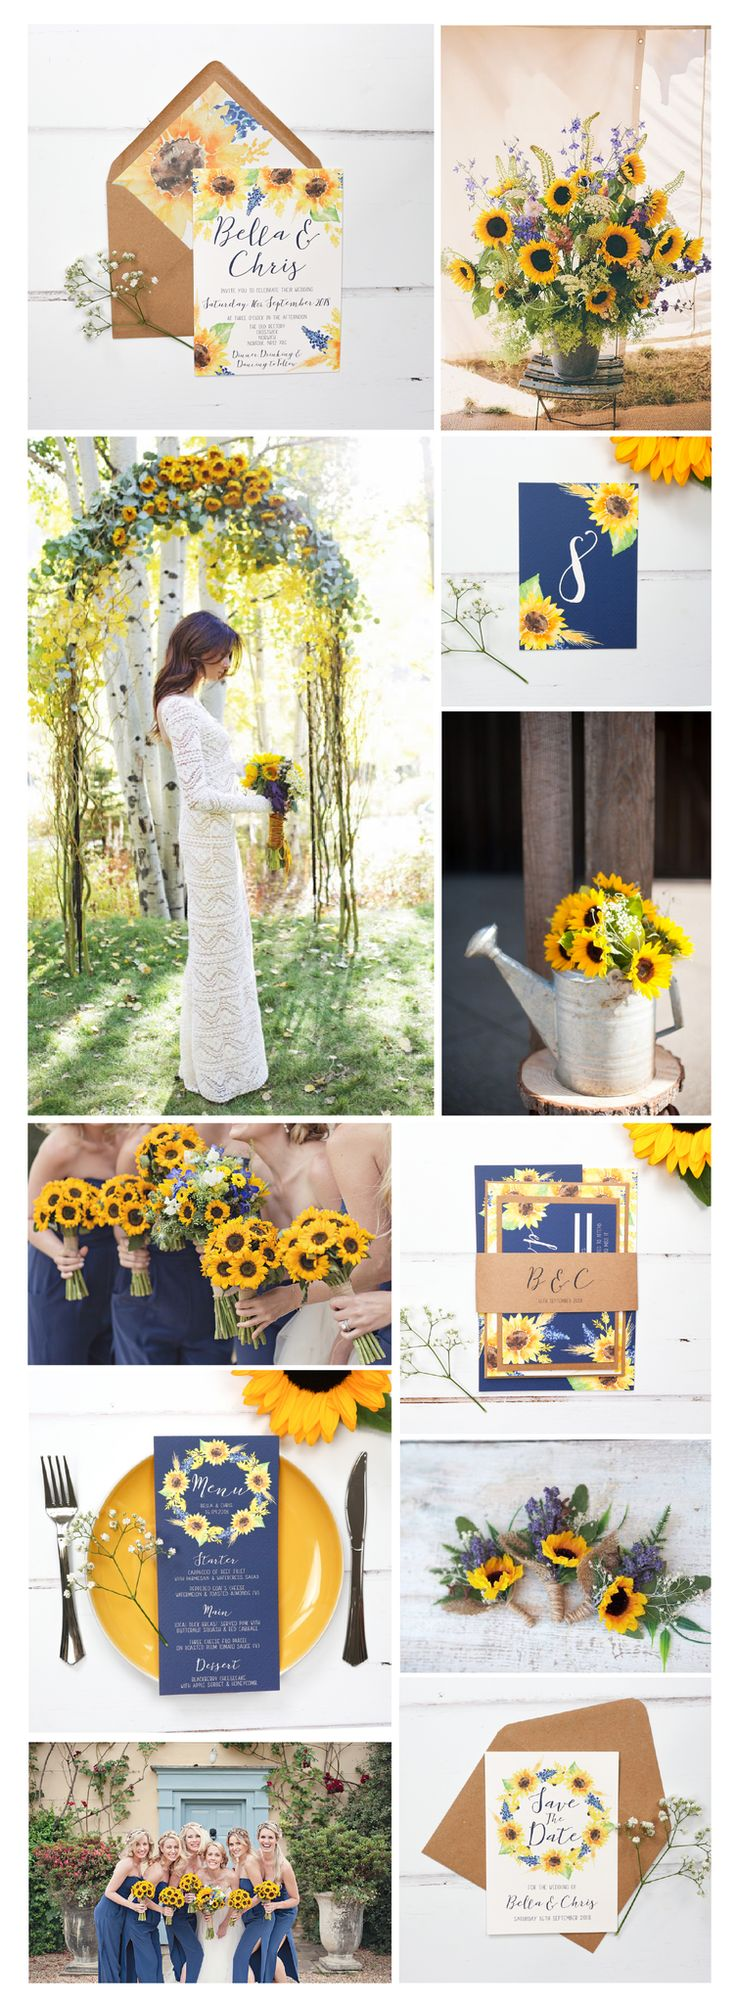 sunflower wedding invitations printable%0A With summertime on the way  the brand new Sunflower Collection is the  perfect suite to    Sunflower Wedding BouquetsSunflower Wedding  InvitationsWedding